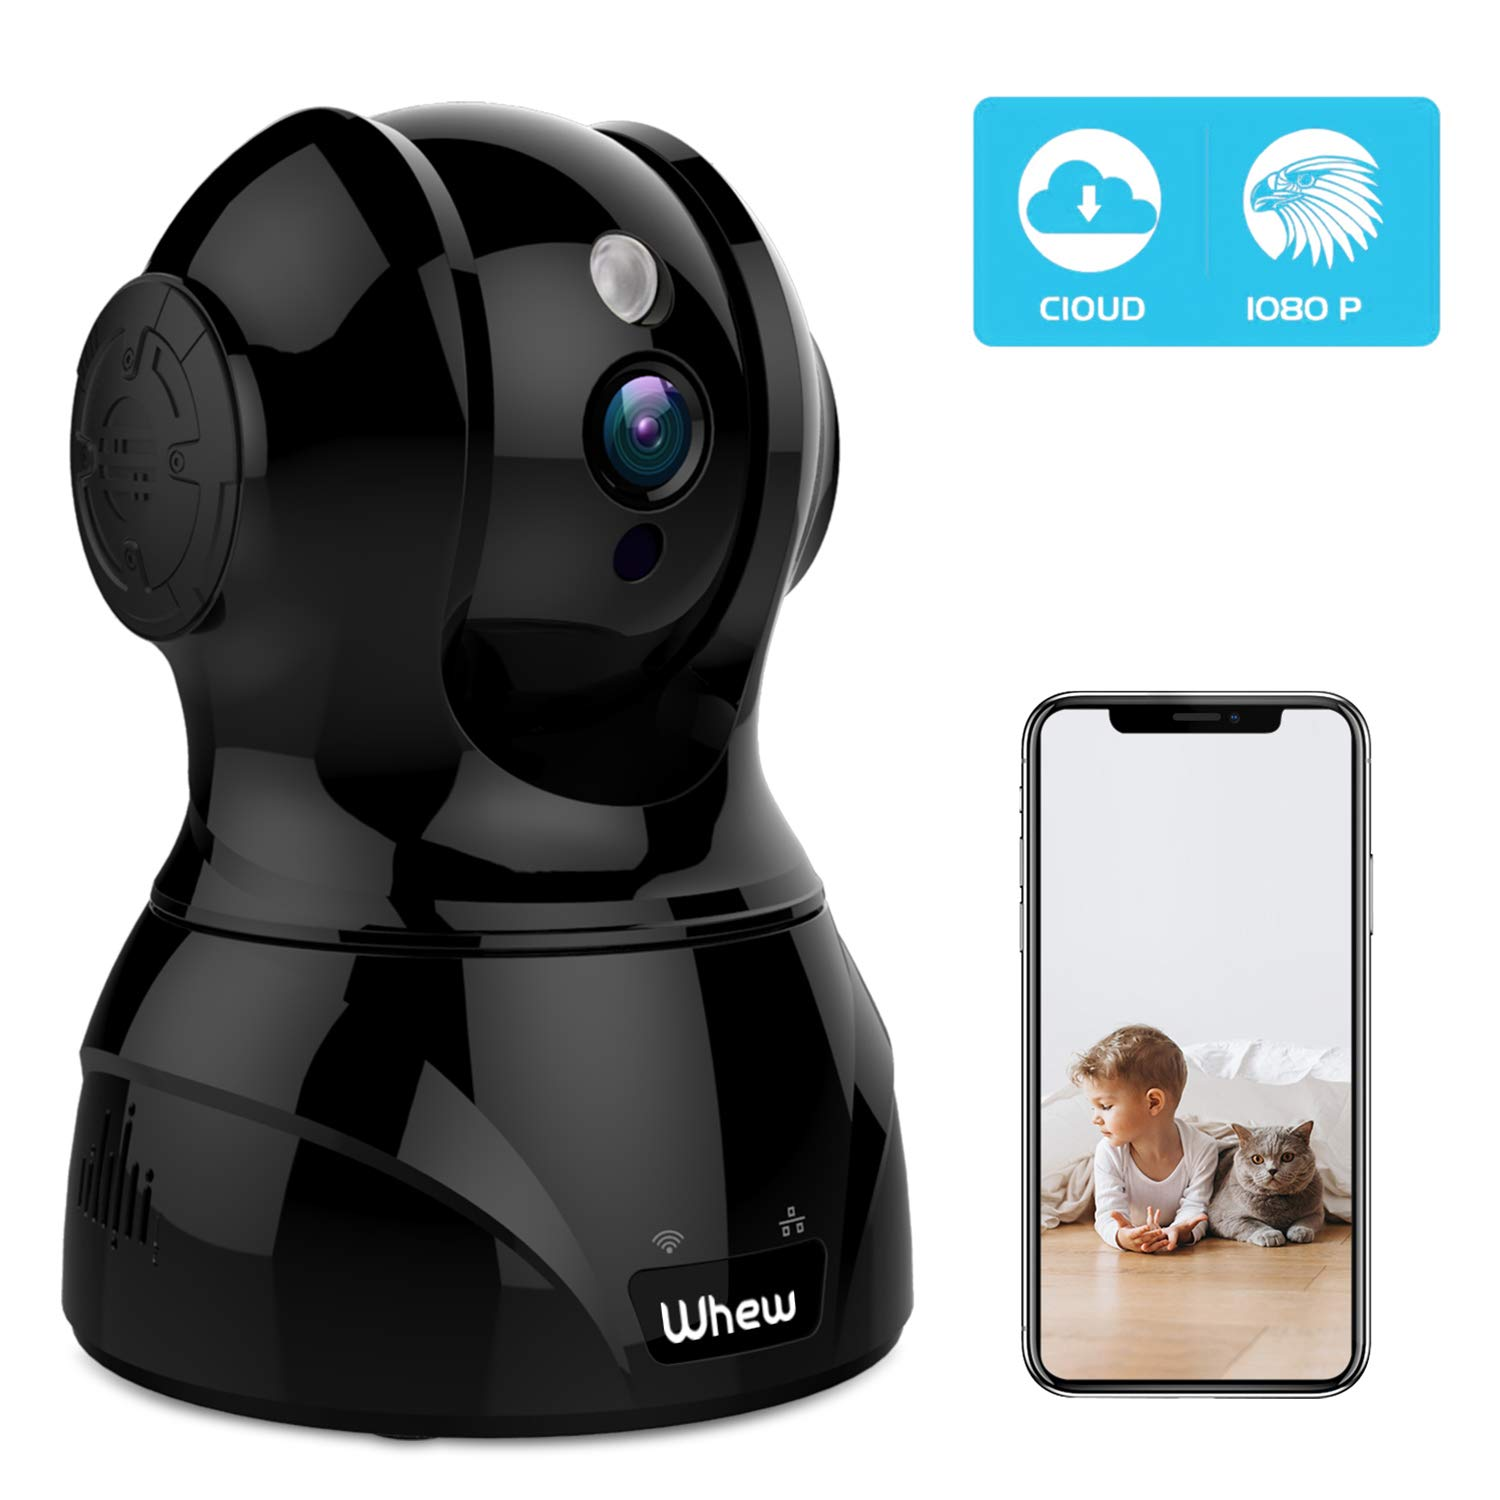 1080P WiFi Camera Indoor, Whew Wireless Home Security Camera Baby Monitor Pet Camera with Night Vision, 2-Way Audio, Motion Detection, Cloud Storage, Work with Alexa, Black by Whew